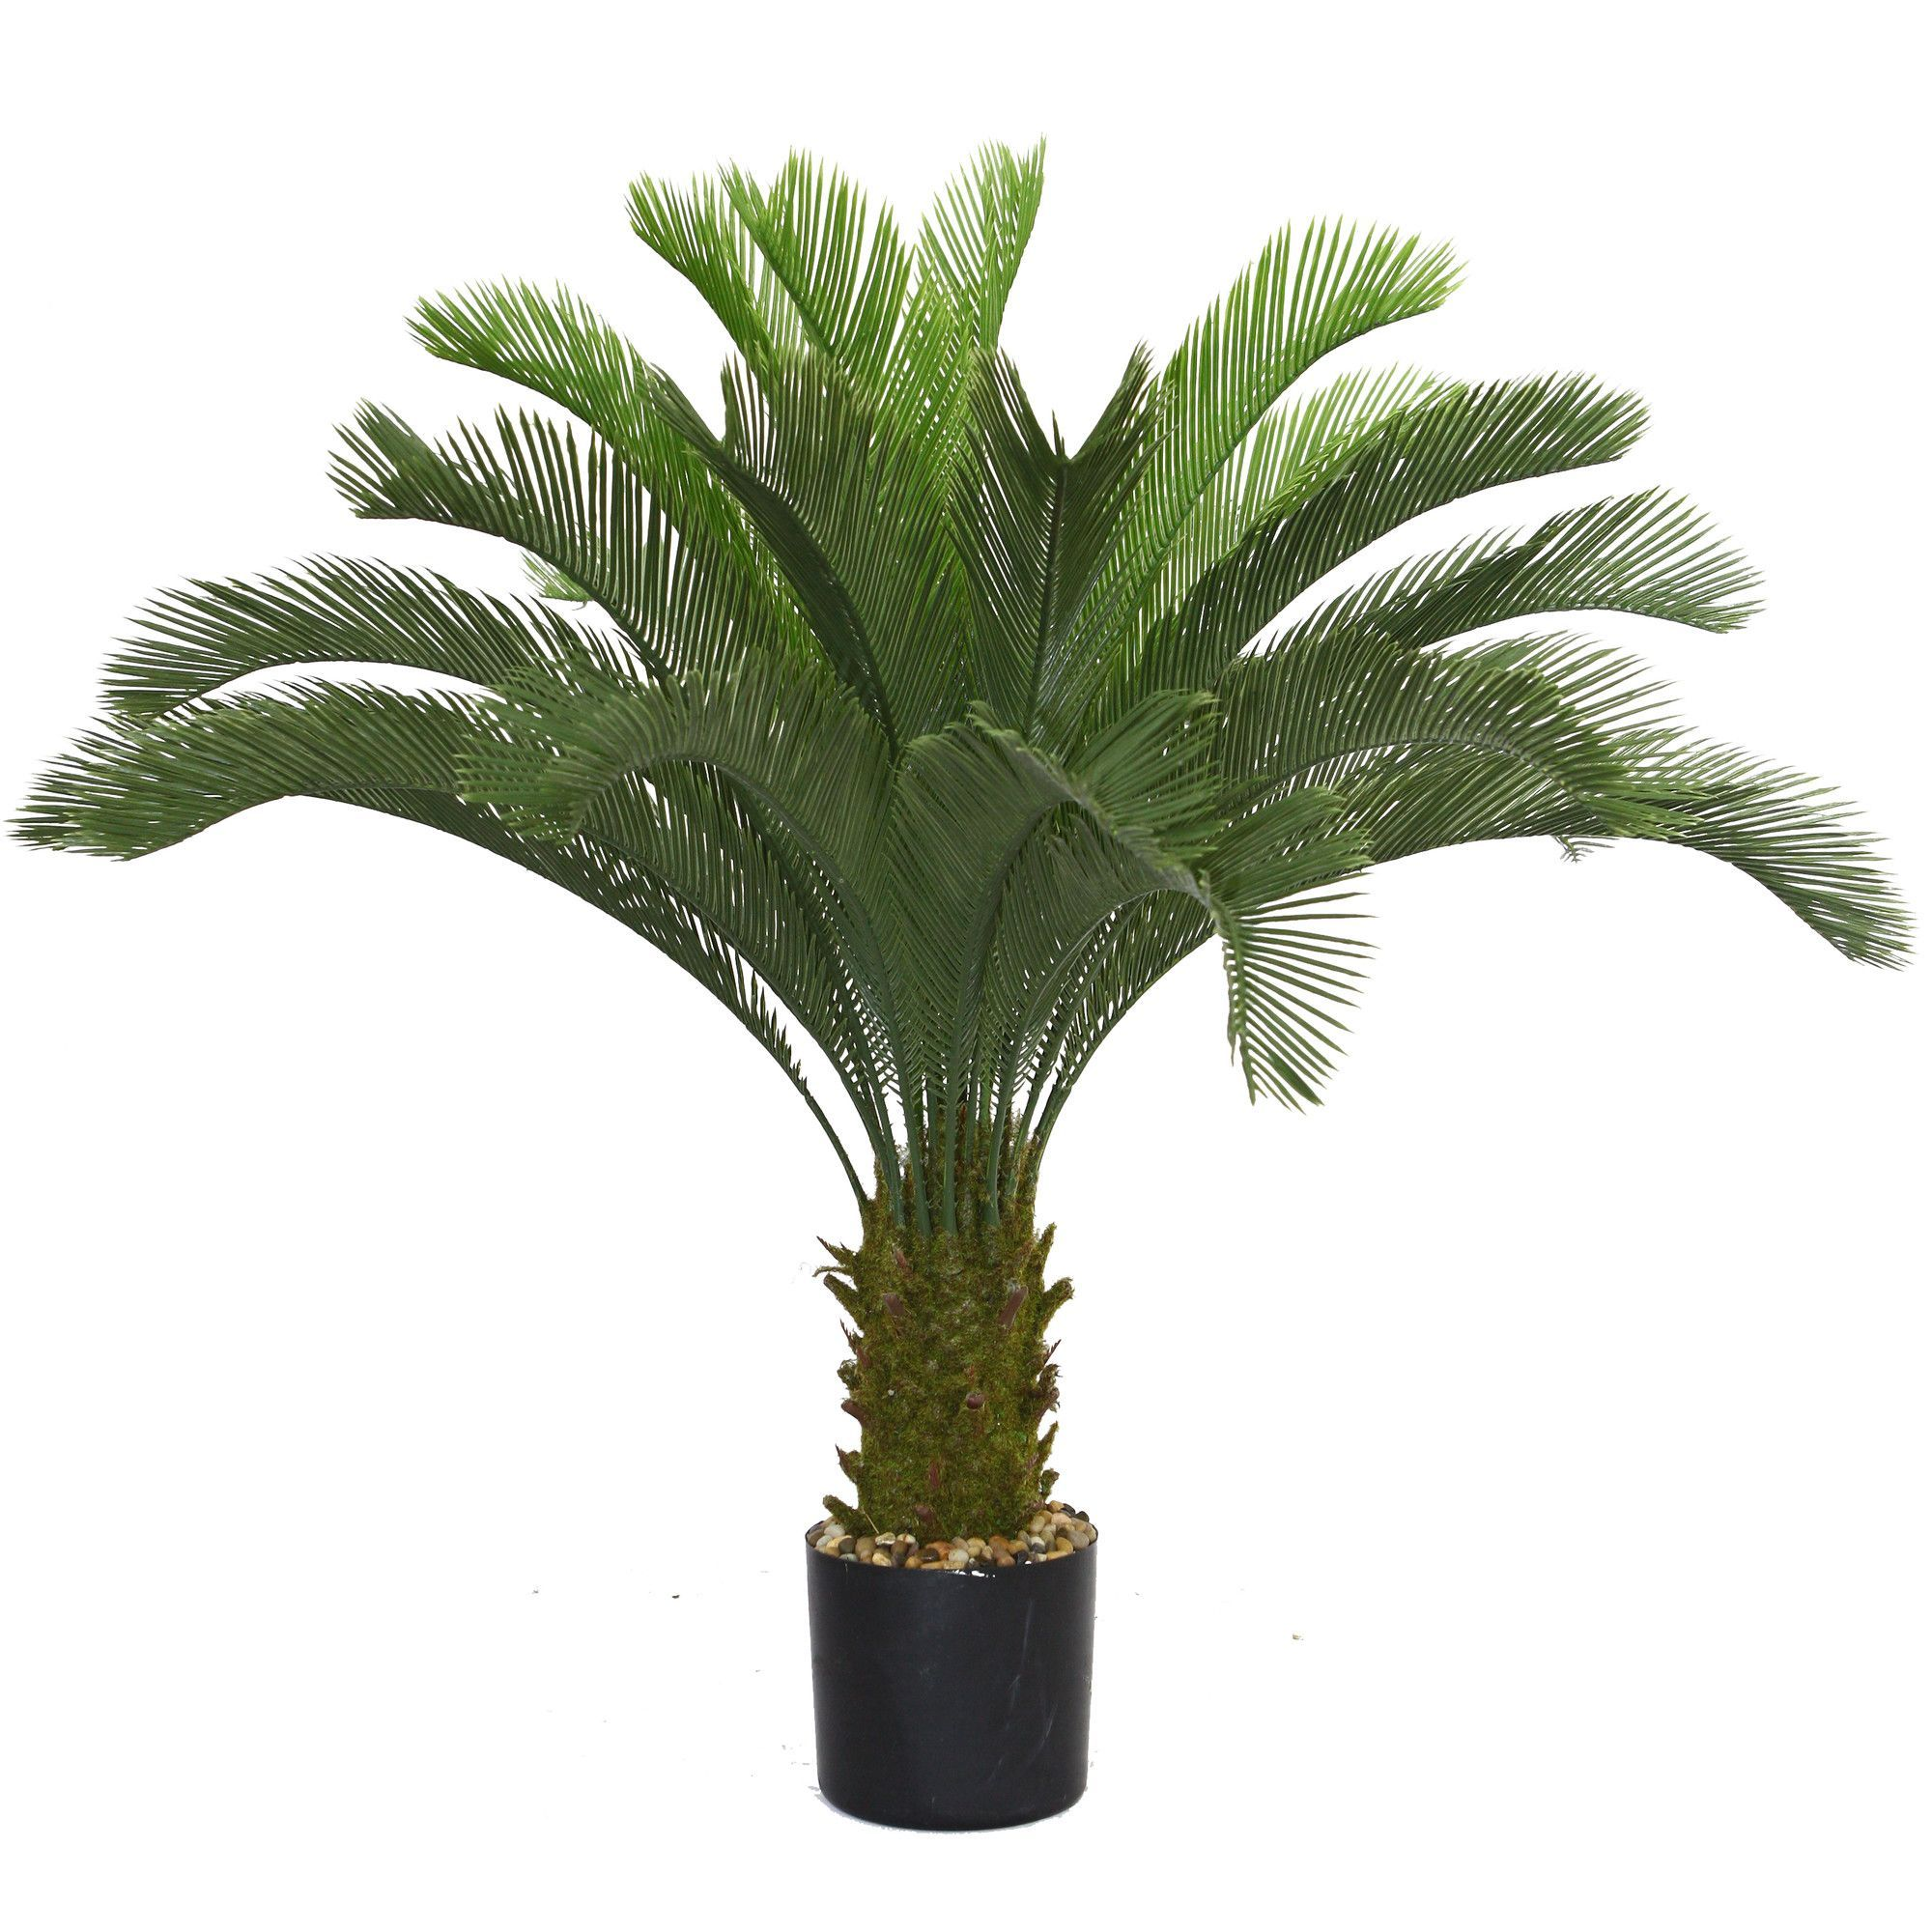 cycas palm tree in pot photoshop pinterest. Black Bedroom Furniture Sets. Home Design Ideas